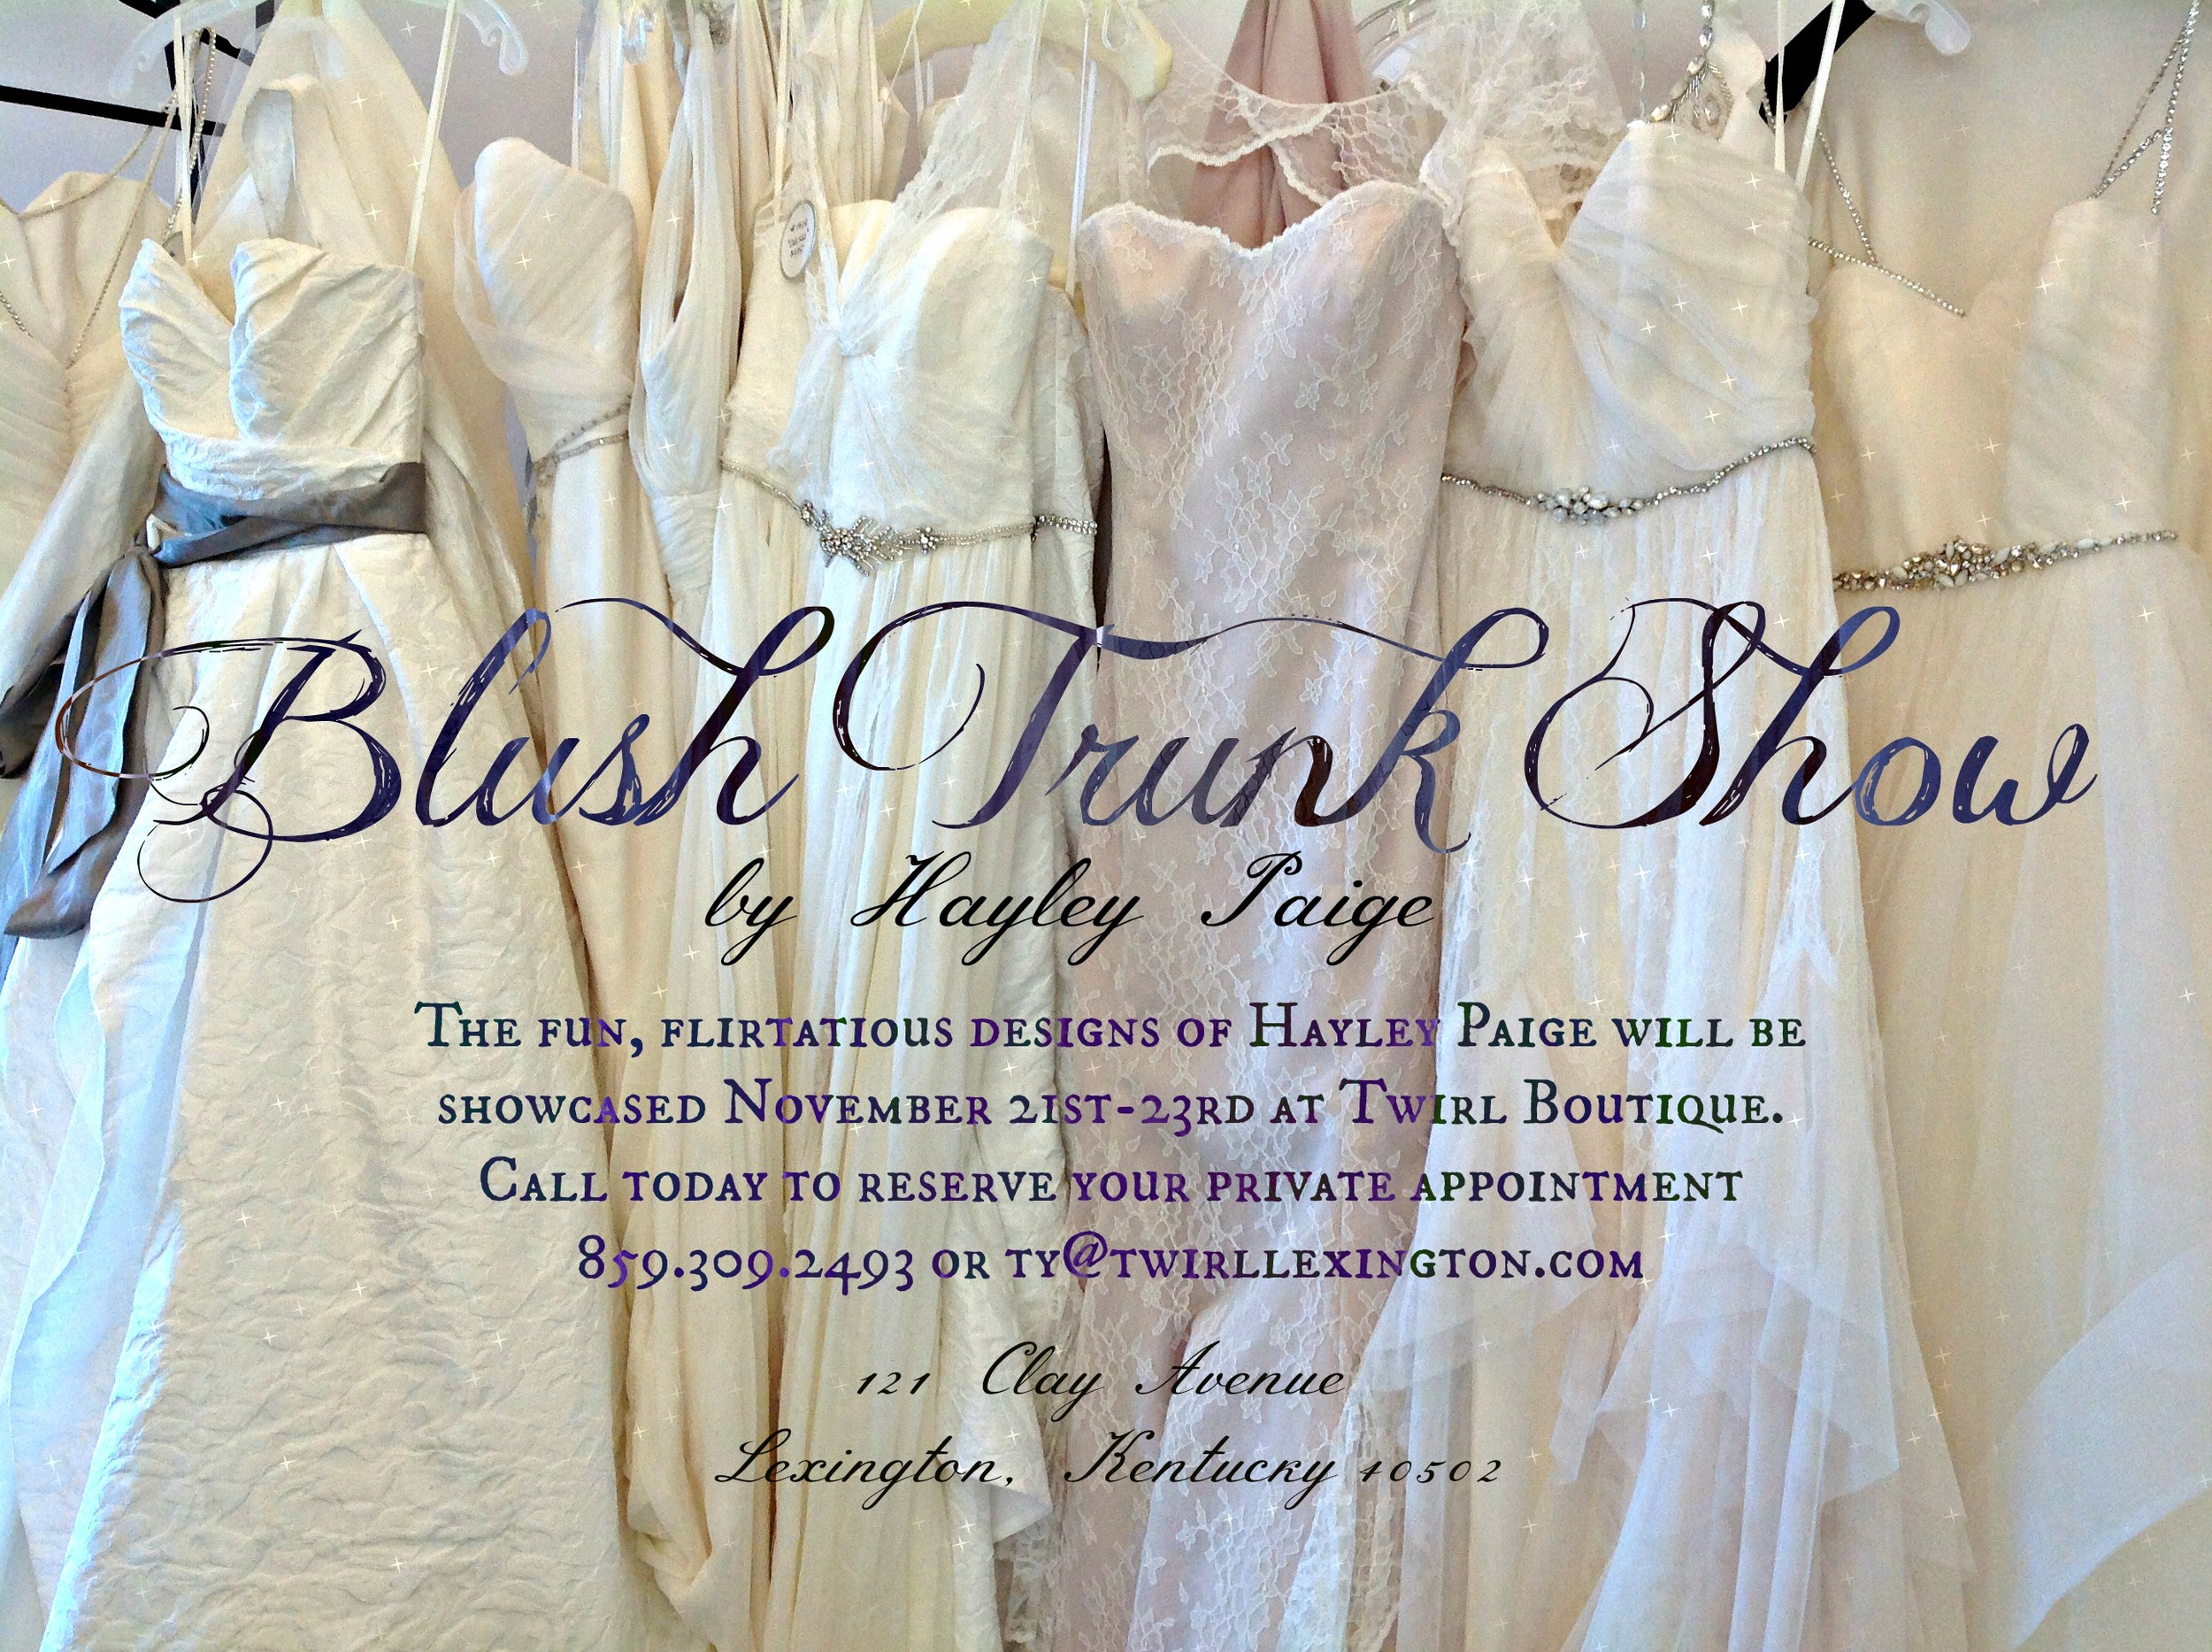 Blush Trunk Show JLM Couture Hayley Paige Wedding Gowns Lexington